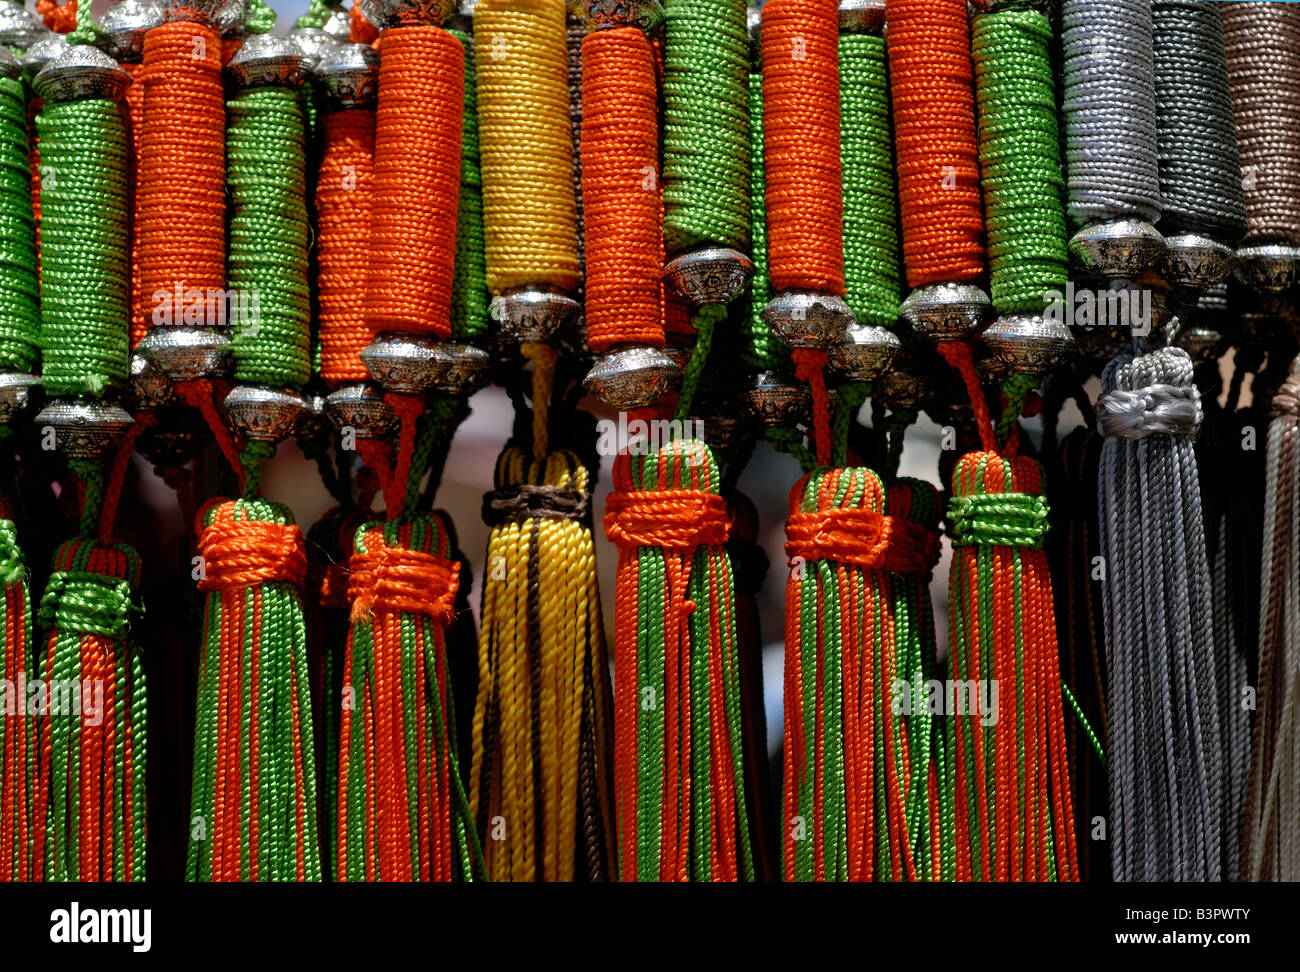 Tastles for keys, door knobs and chests of draws vibrant colours travel Marrakech Morrocco Africa Interior design - Stock Image